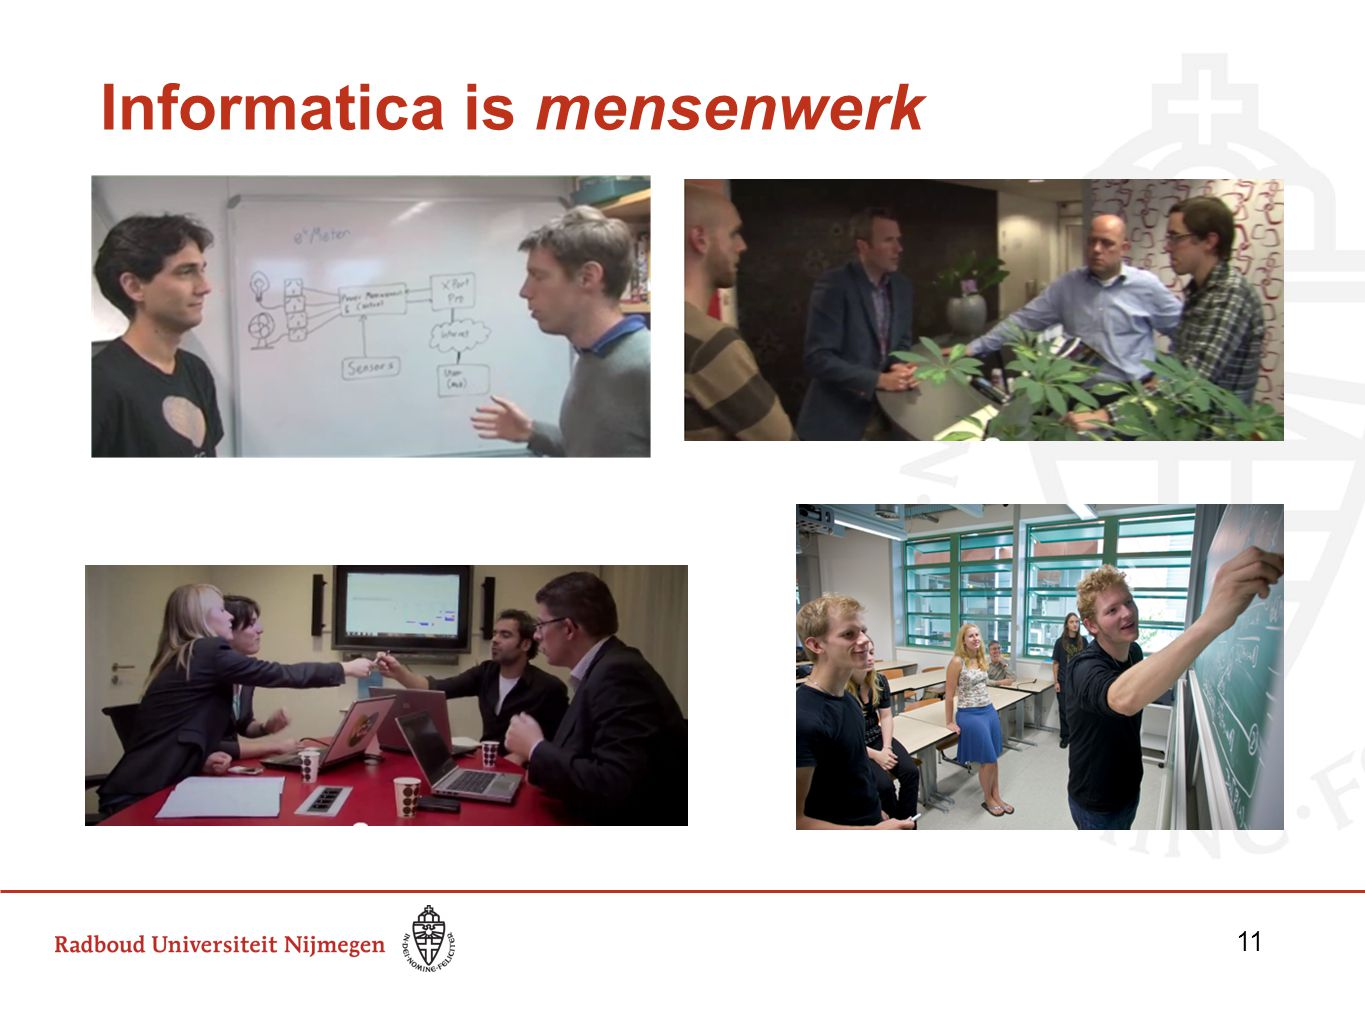 Informatica is mensenwerk